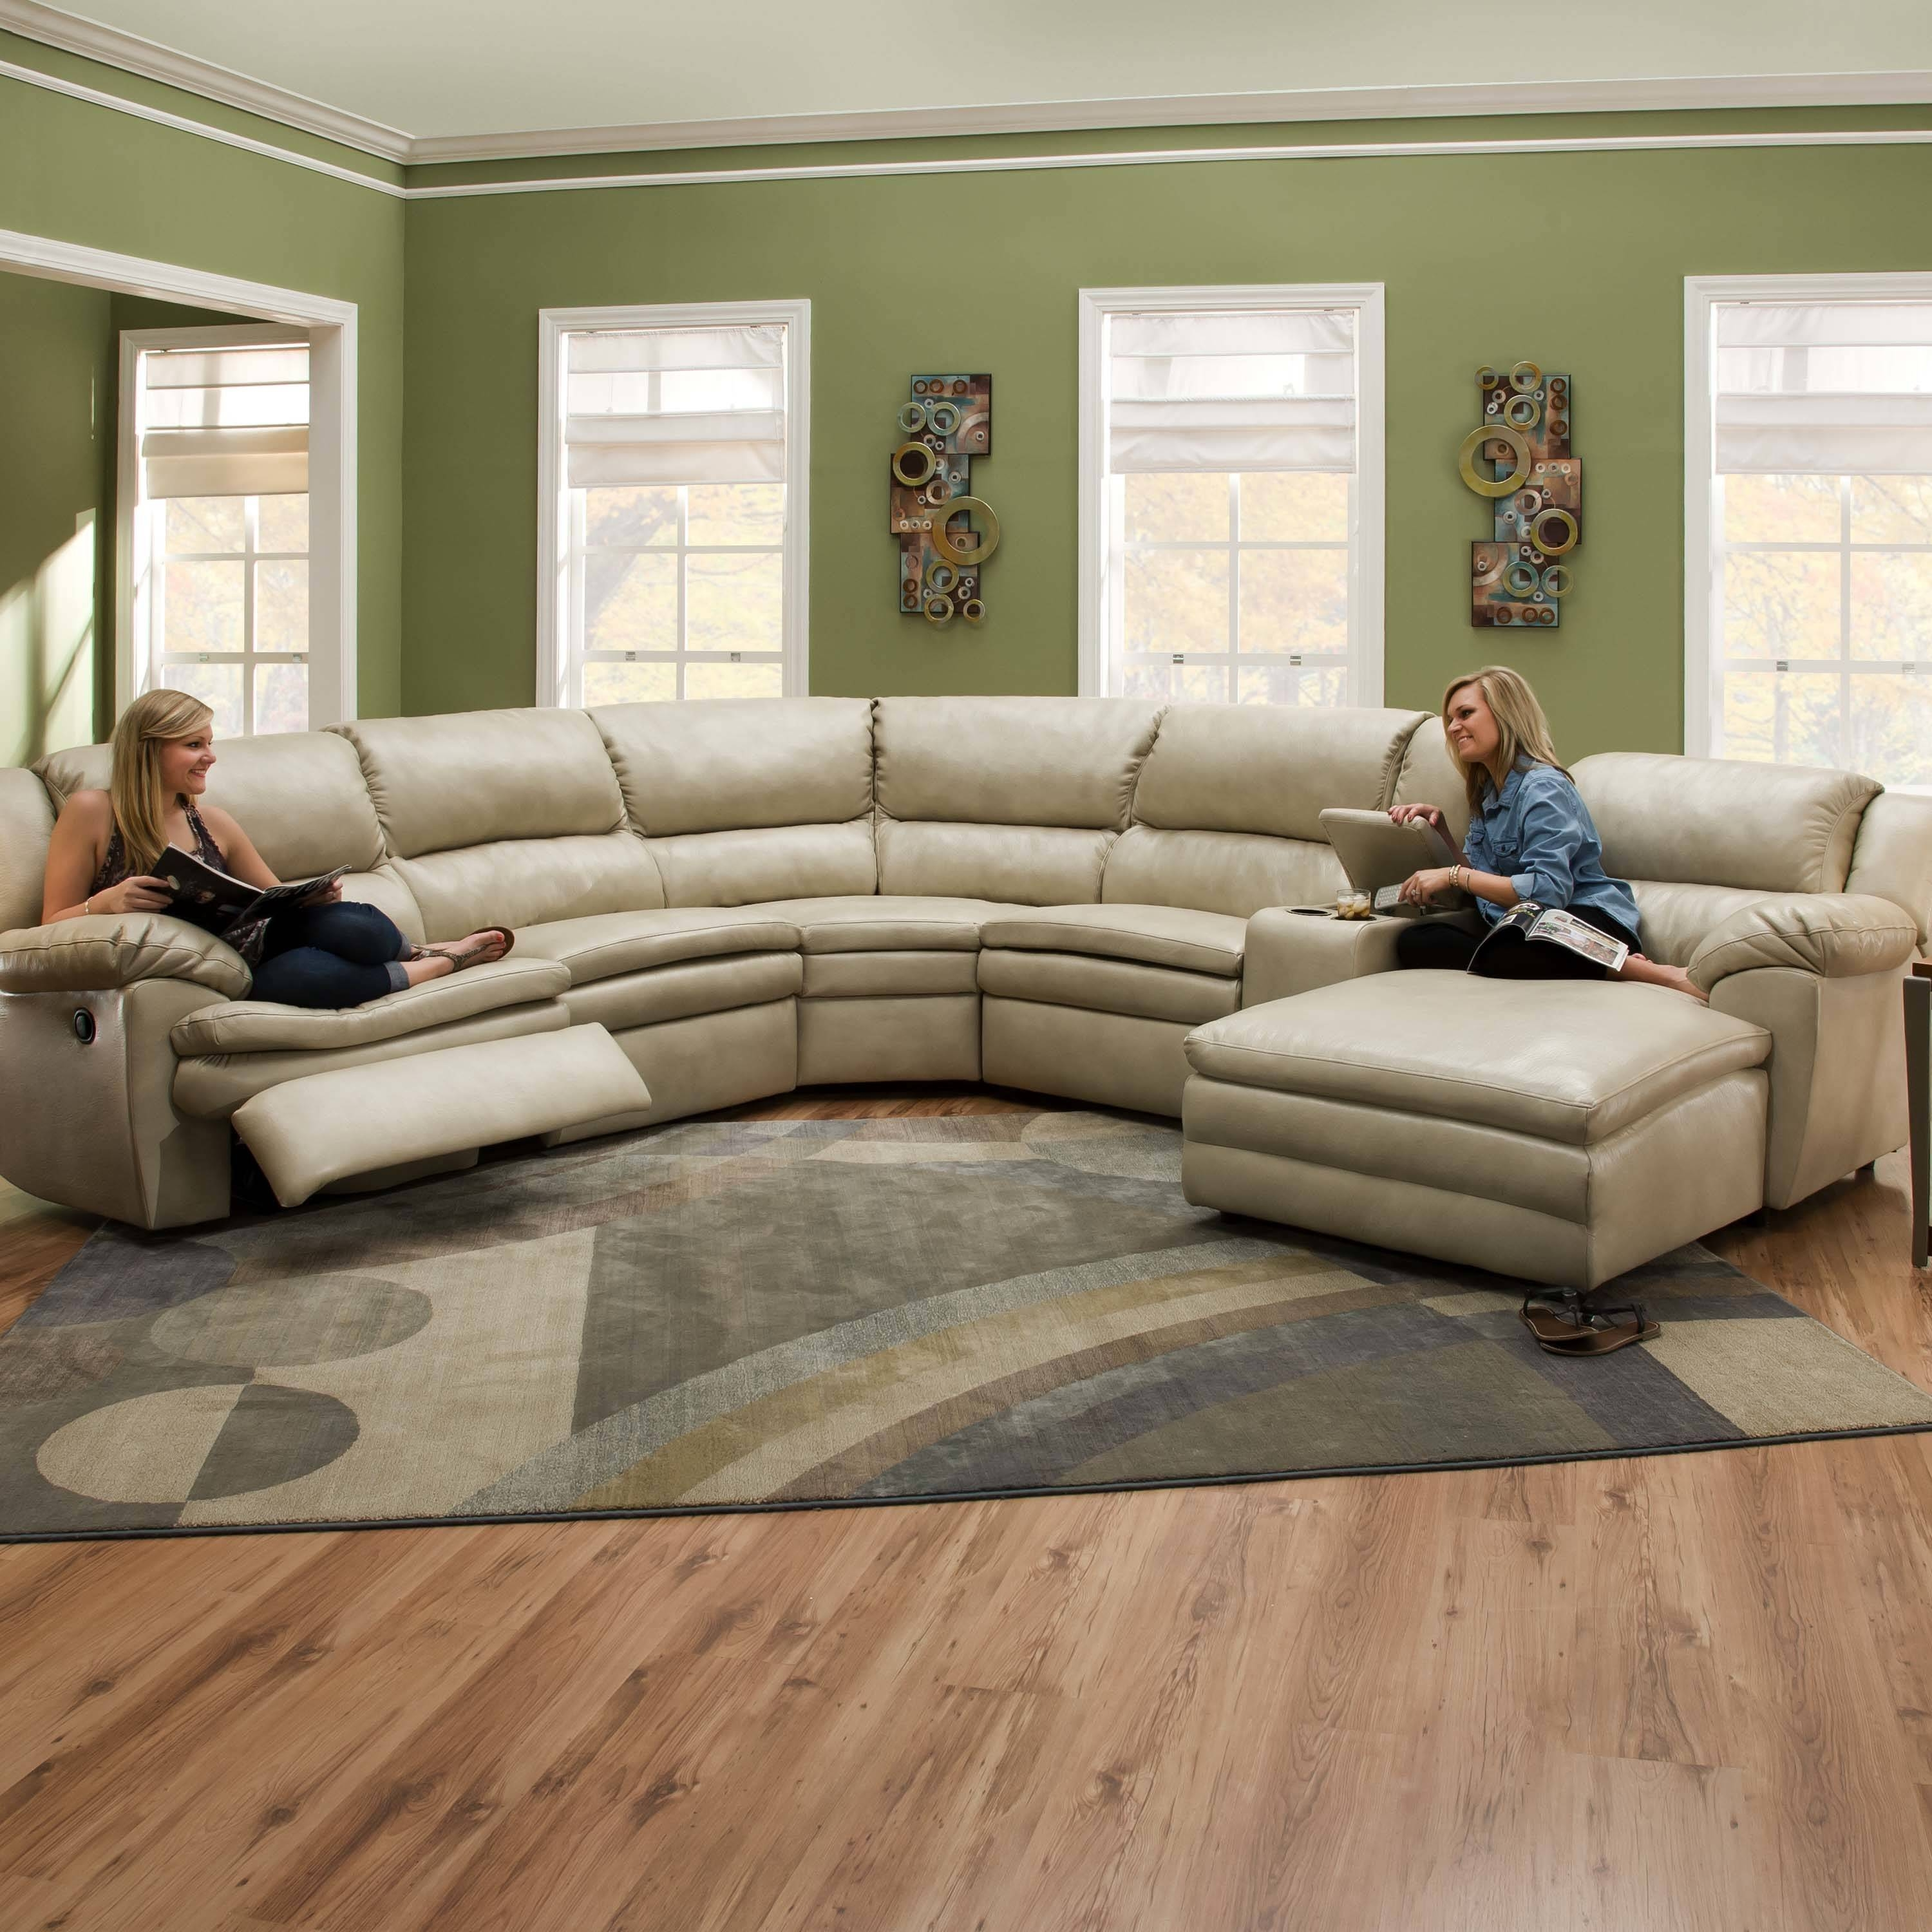 Furniture: Home Theater Sectional Sofas Wayfair In Home Theater within Theatre Sectional Sofas (Image 13 of 30)